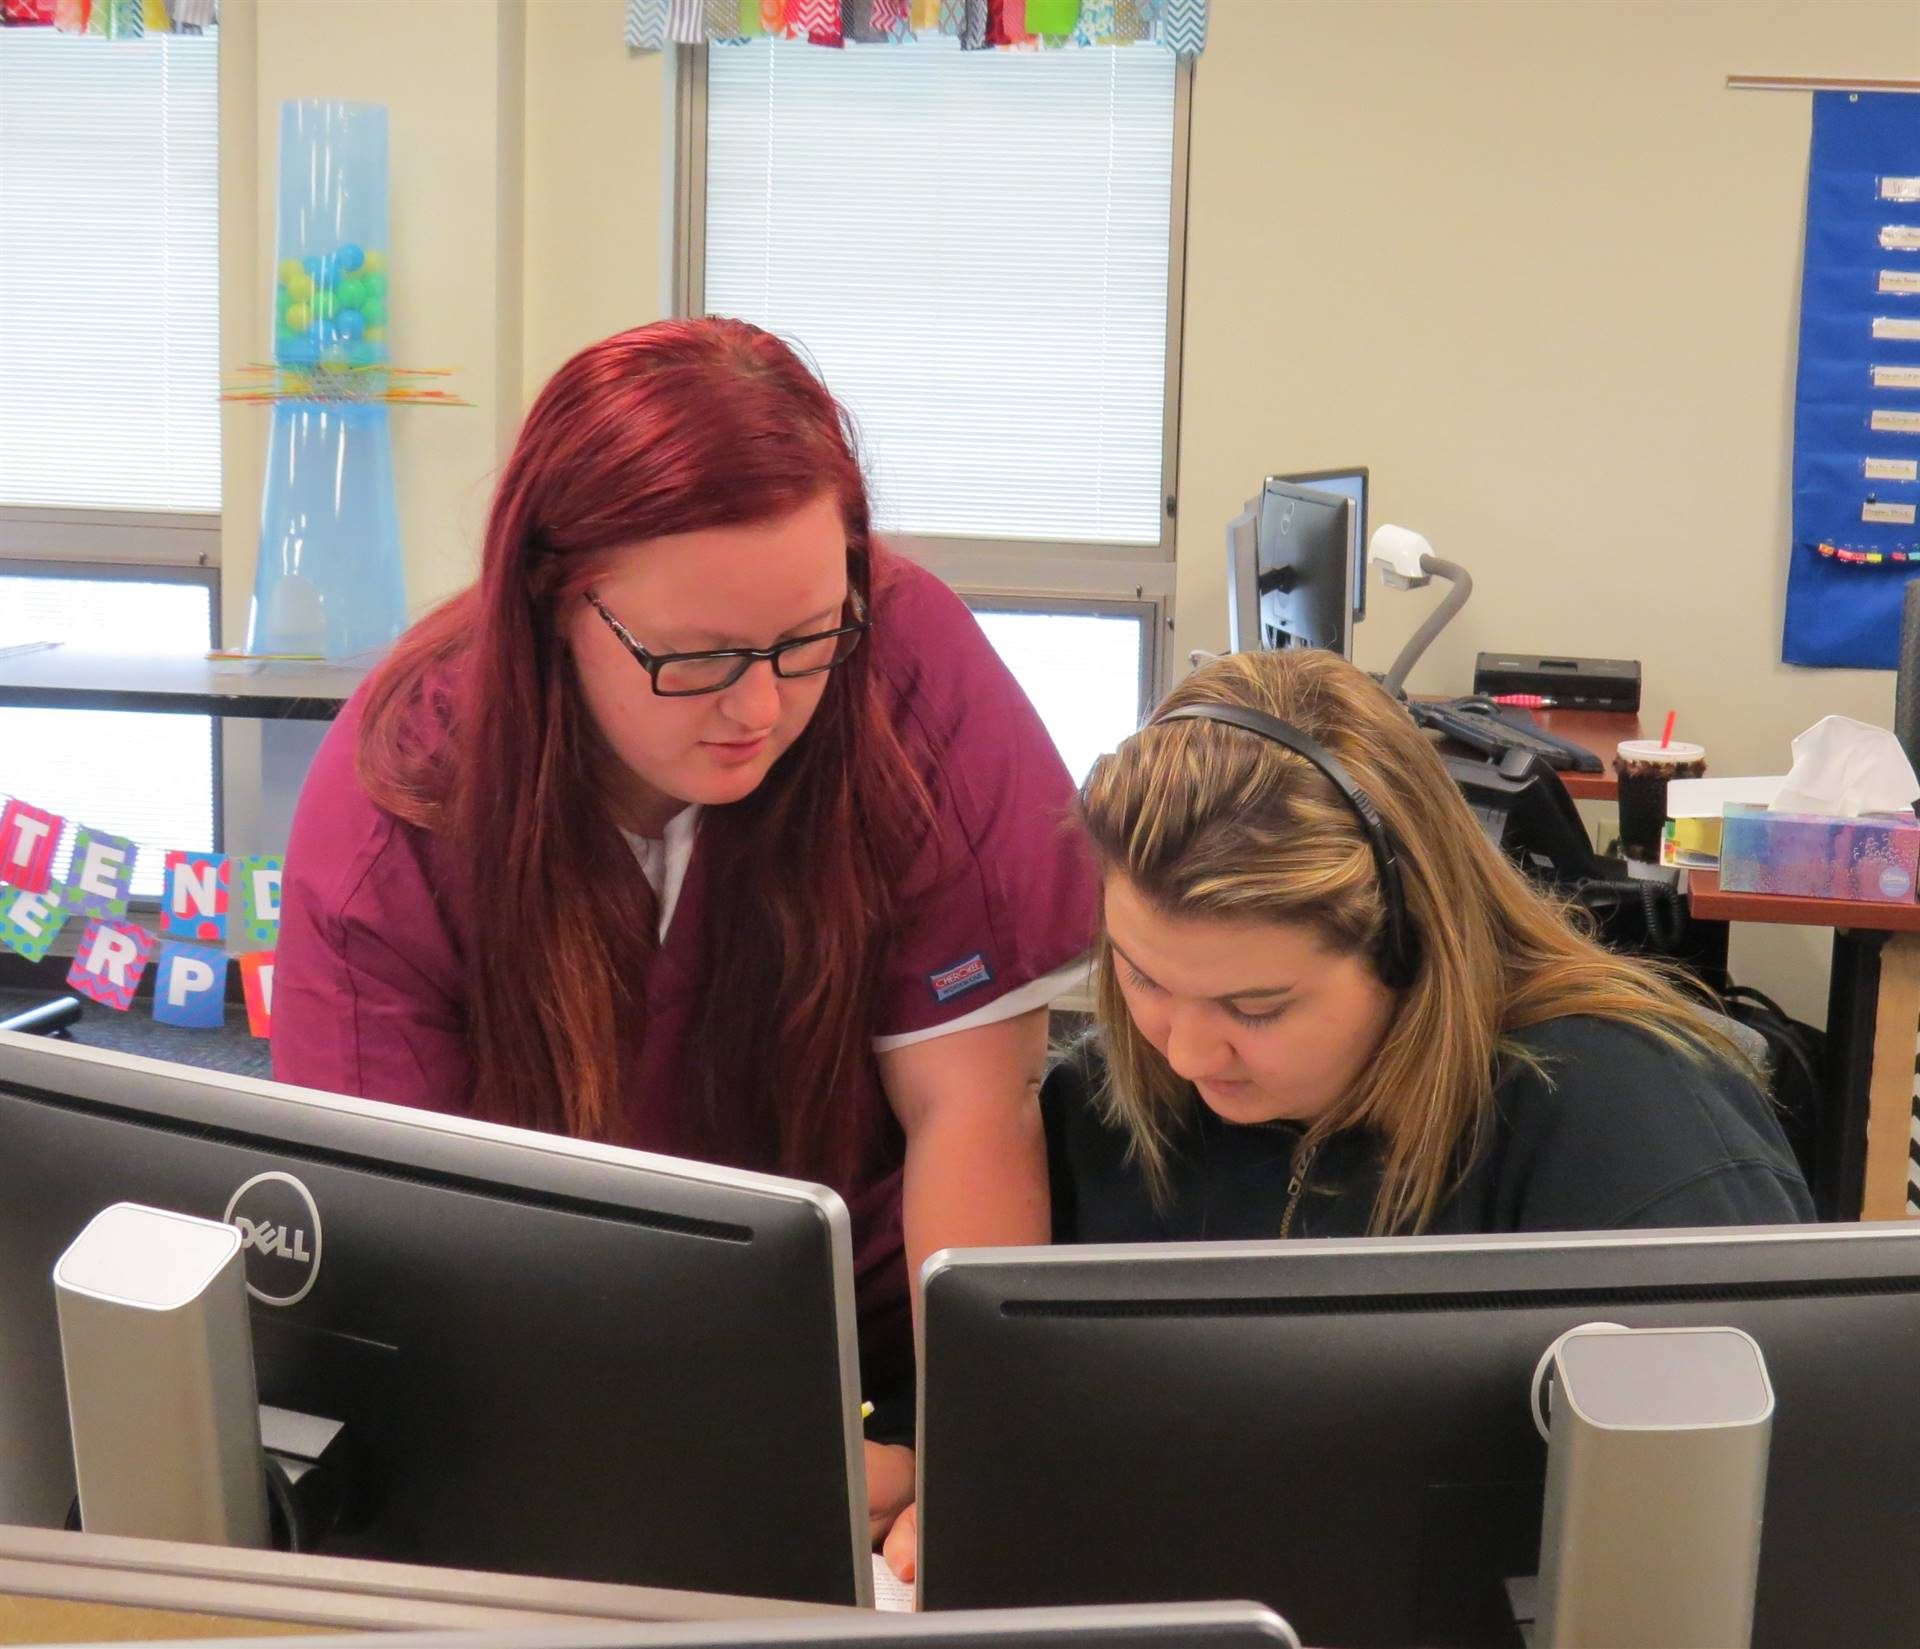 Two female students working together on the computer